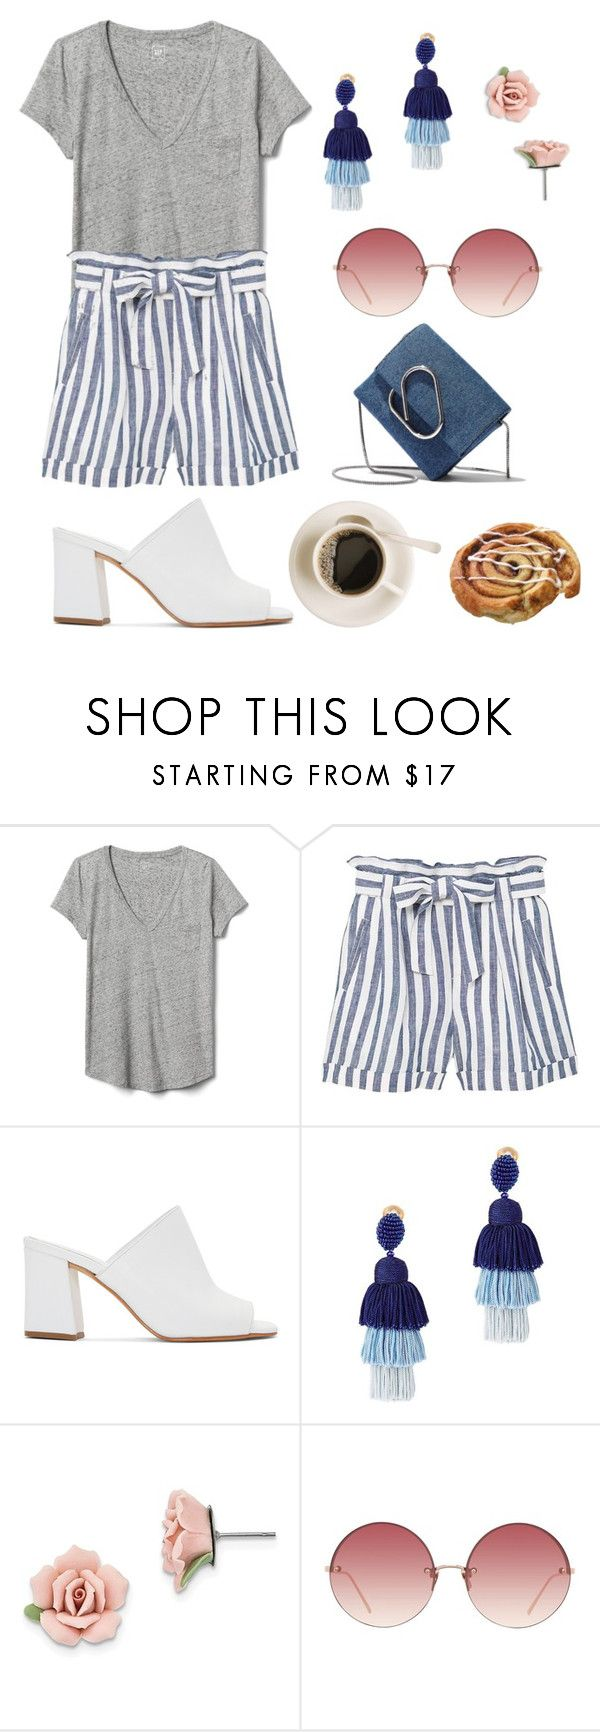 """Thursday"" by piedraandjesus on Polyvore featuring moda, Gap, MANGO, Maryam Nassir Zadeh, Oscar de la Renta, 1928, Linda Farrow y 3.1 Phillip Lim"